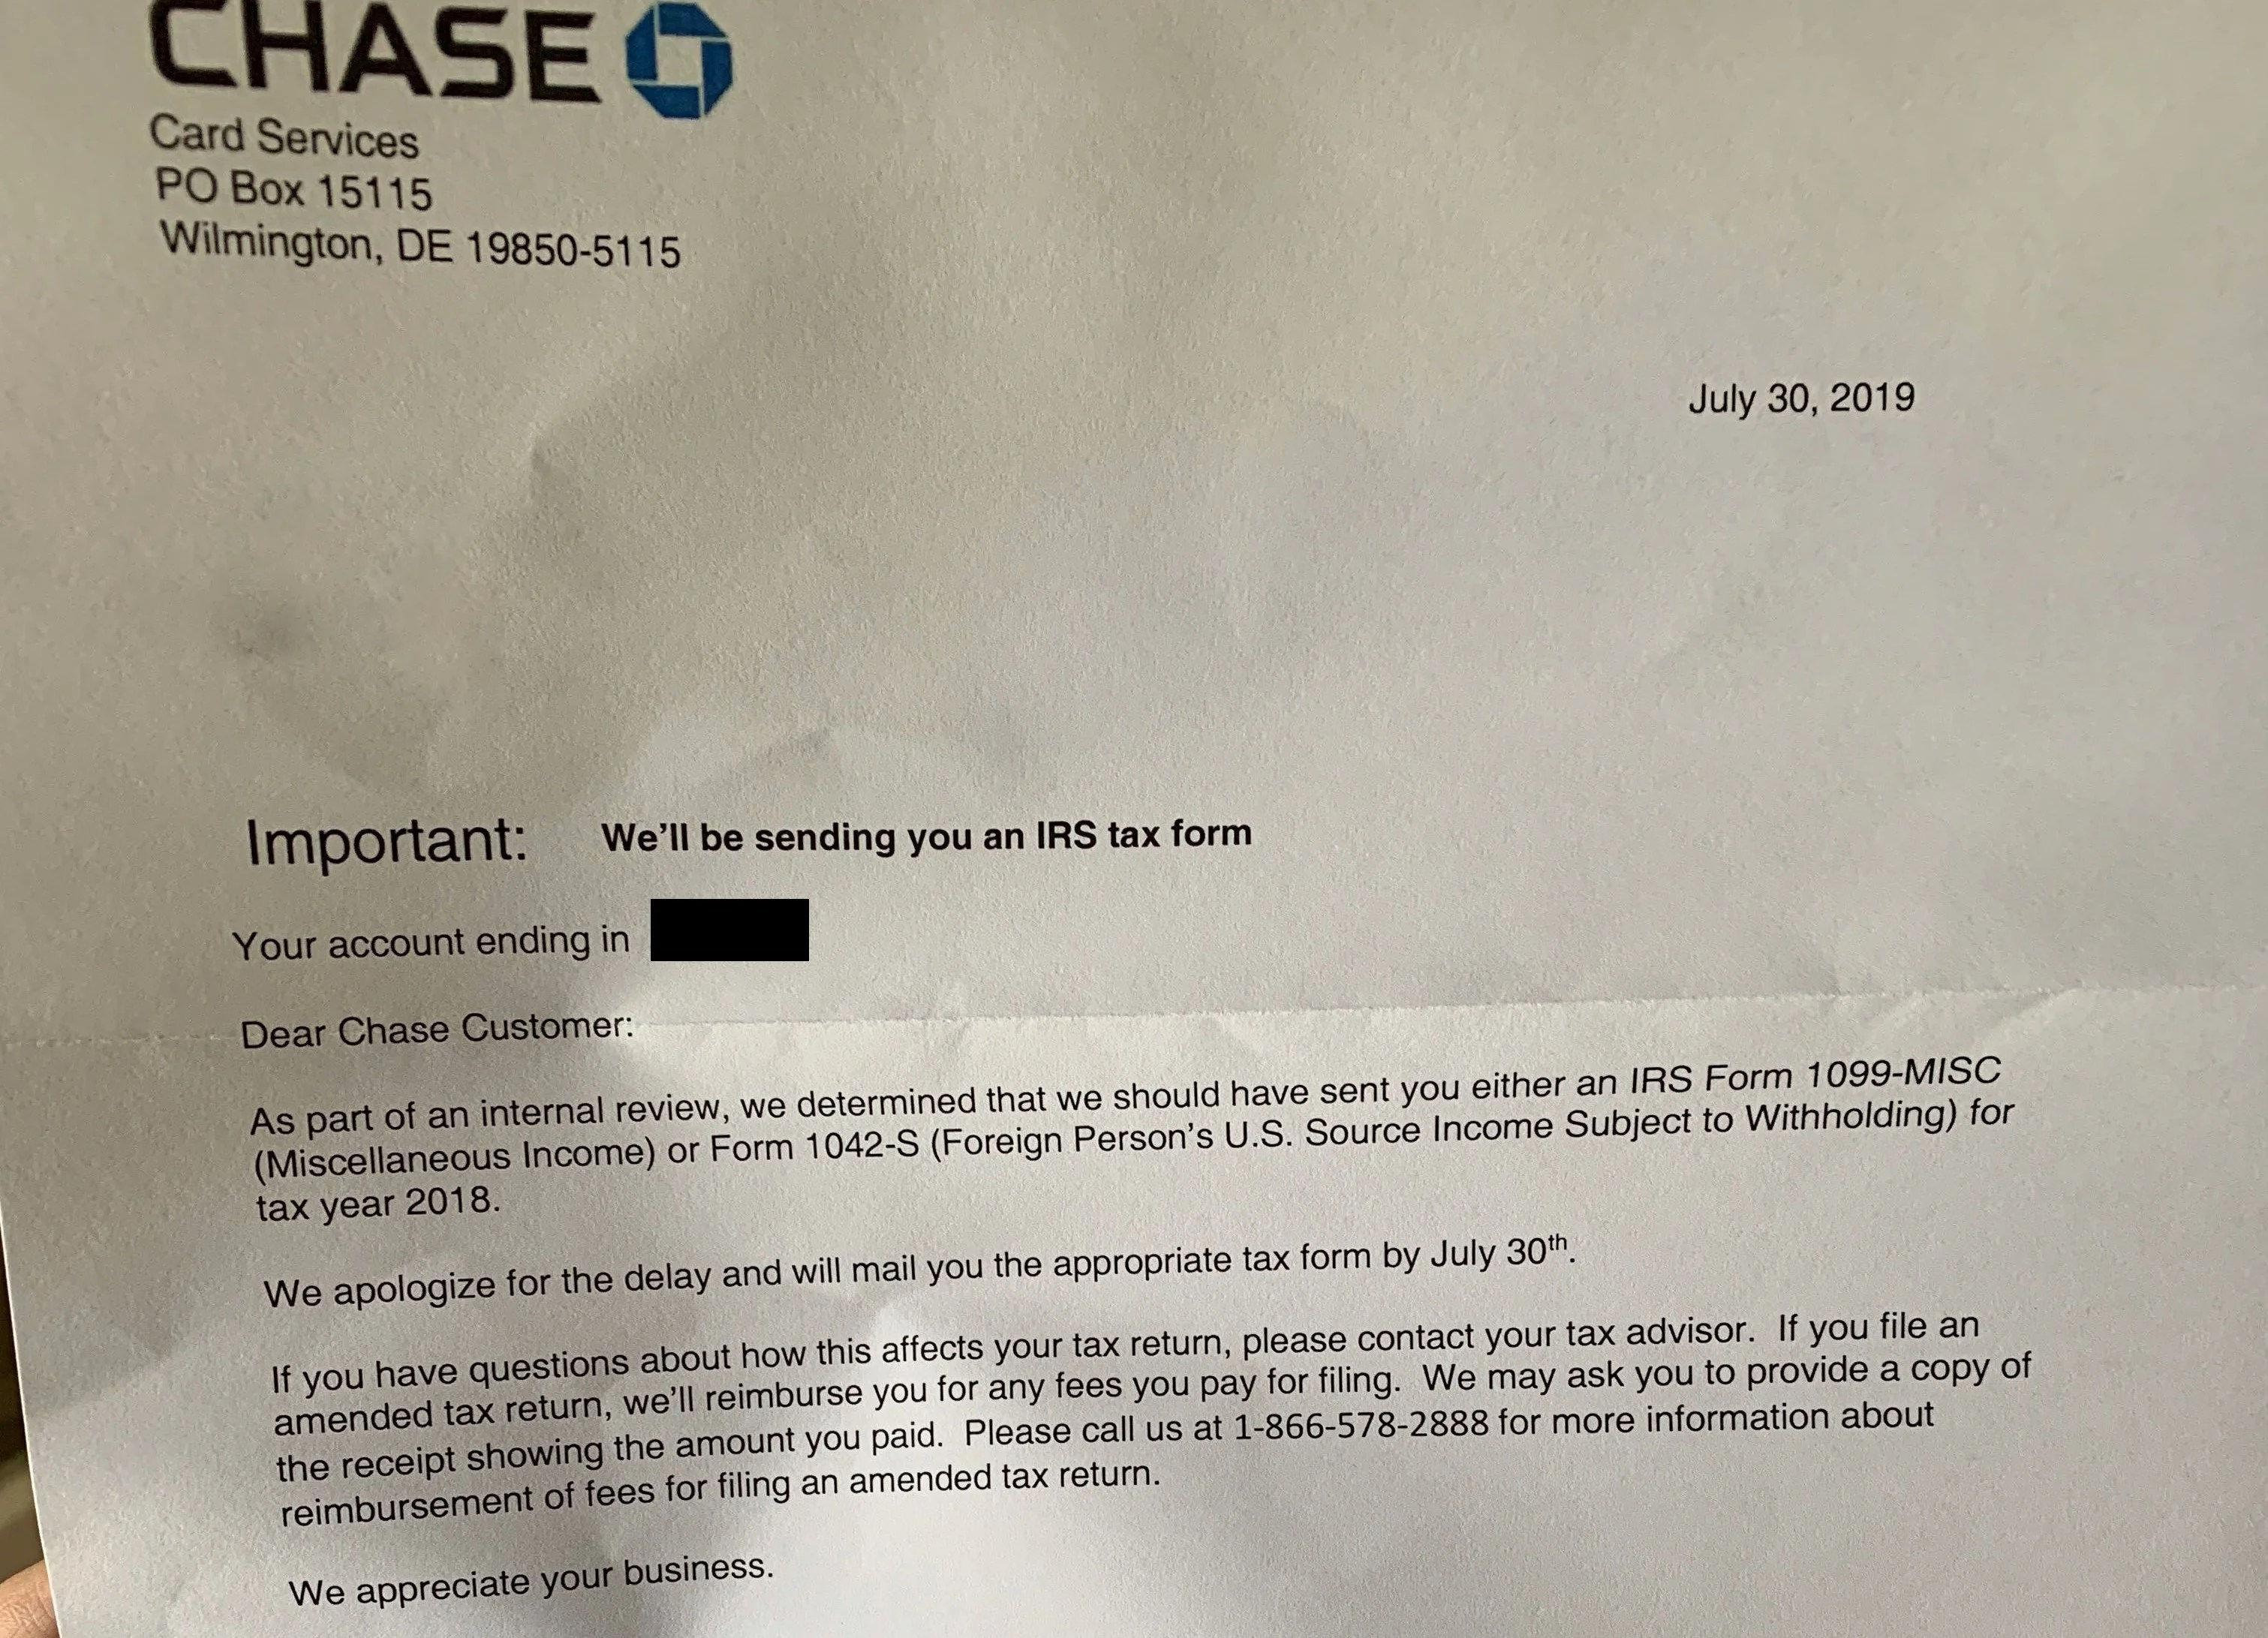 Chase Is Sending New 1099s to Cardholders Reporting Referral Income